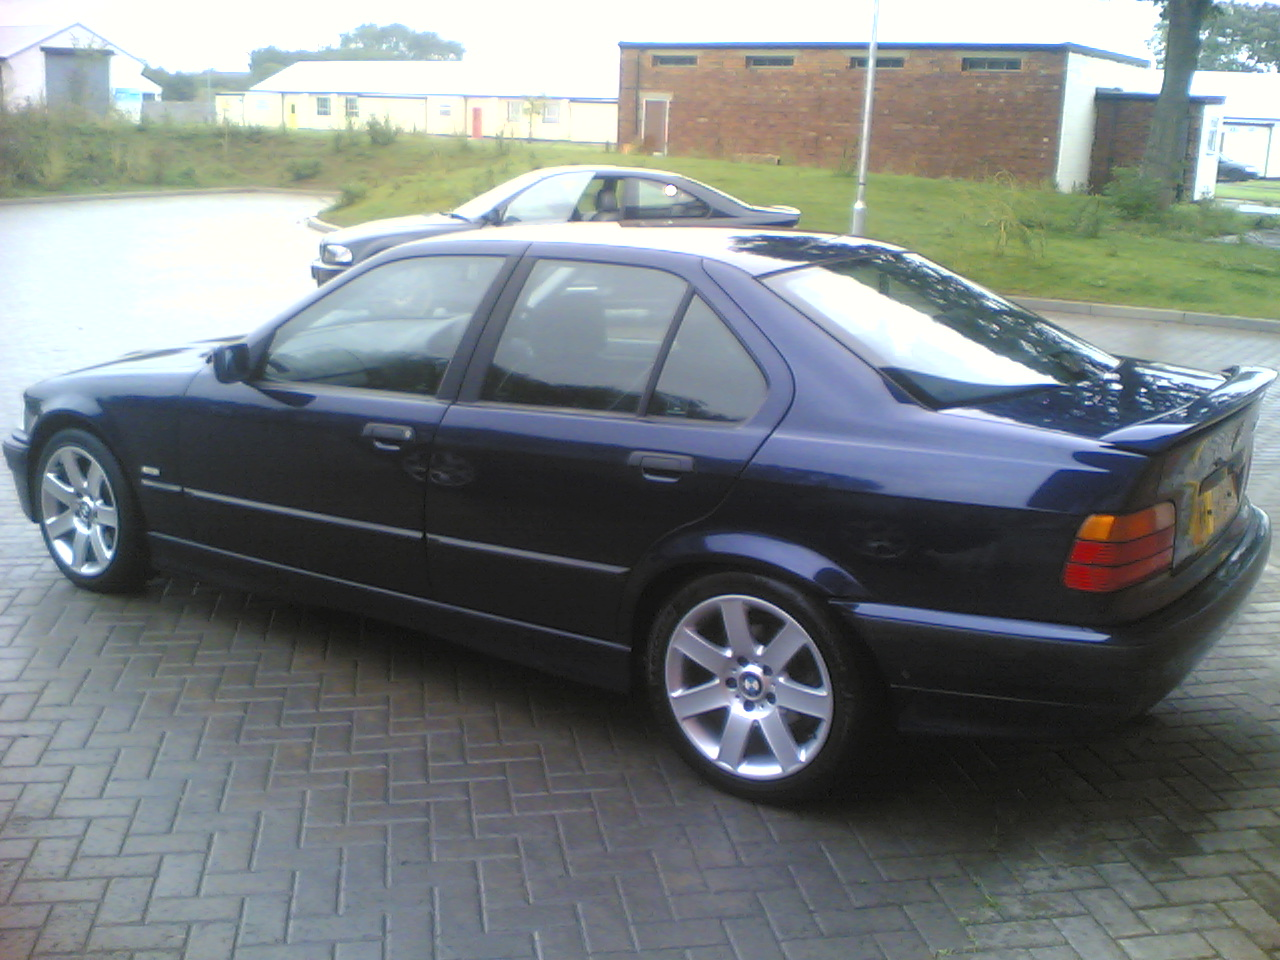 BMW 3 series 323i 1997 photo - 9